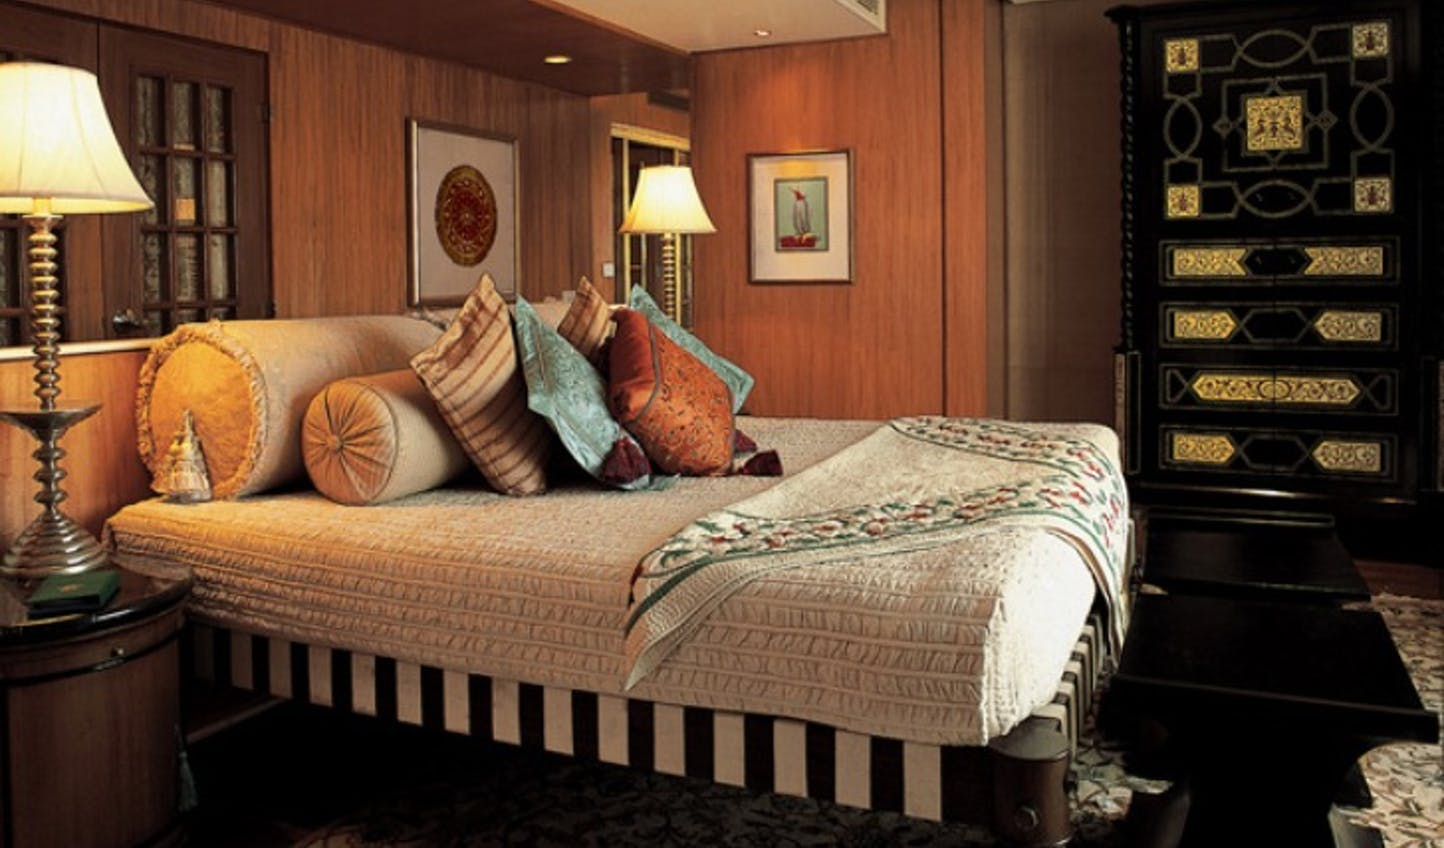 The luxurious interior of a bedroom at Amarvillas, Agra, India